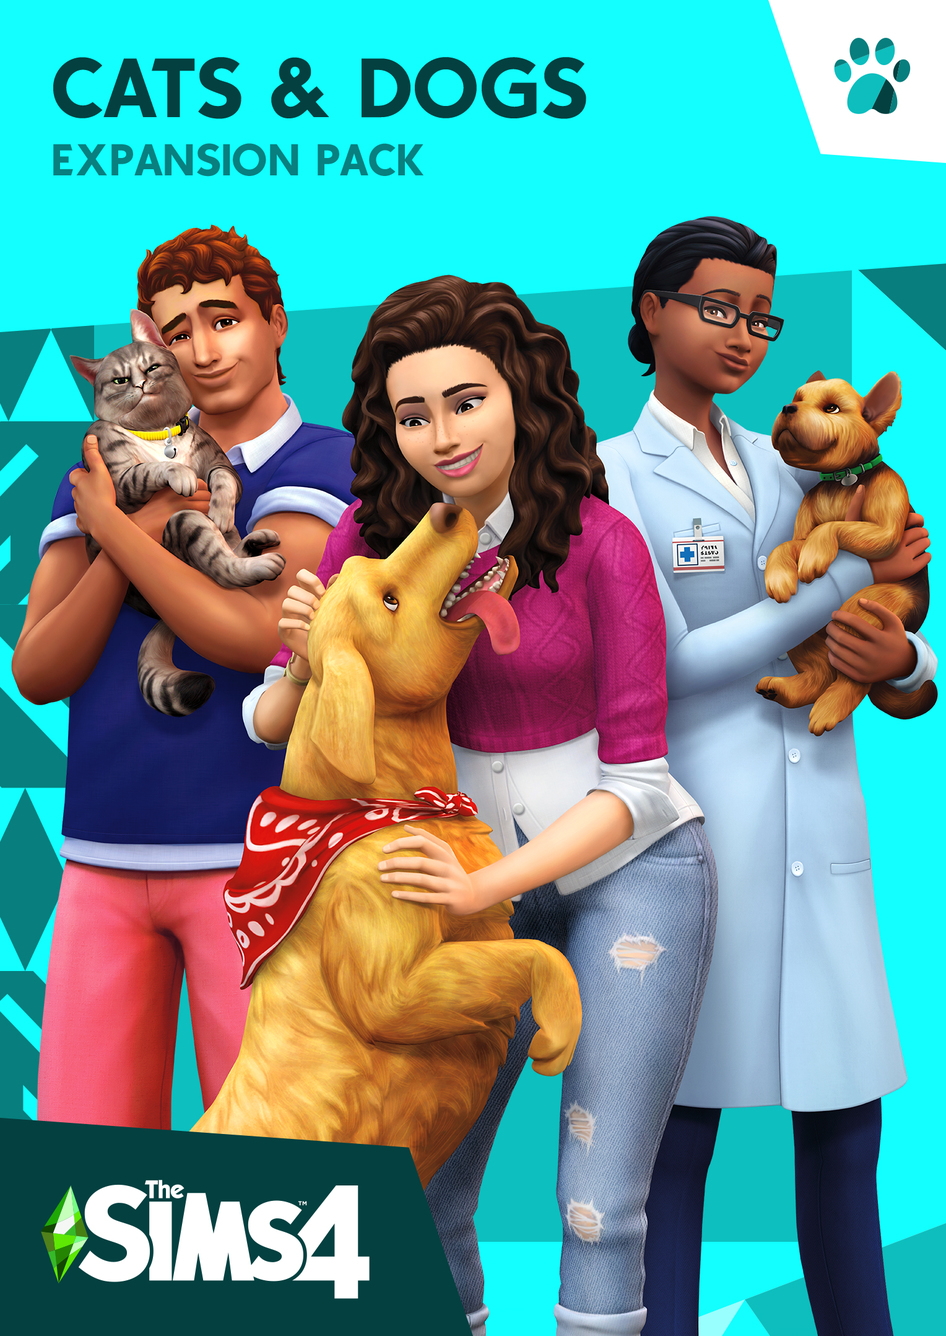 The Sims 4 Cats & Dogs - Origin